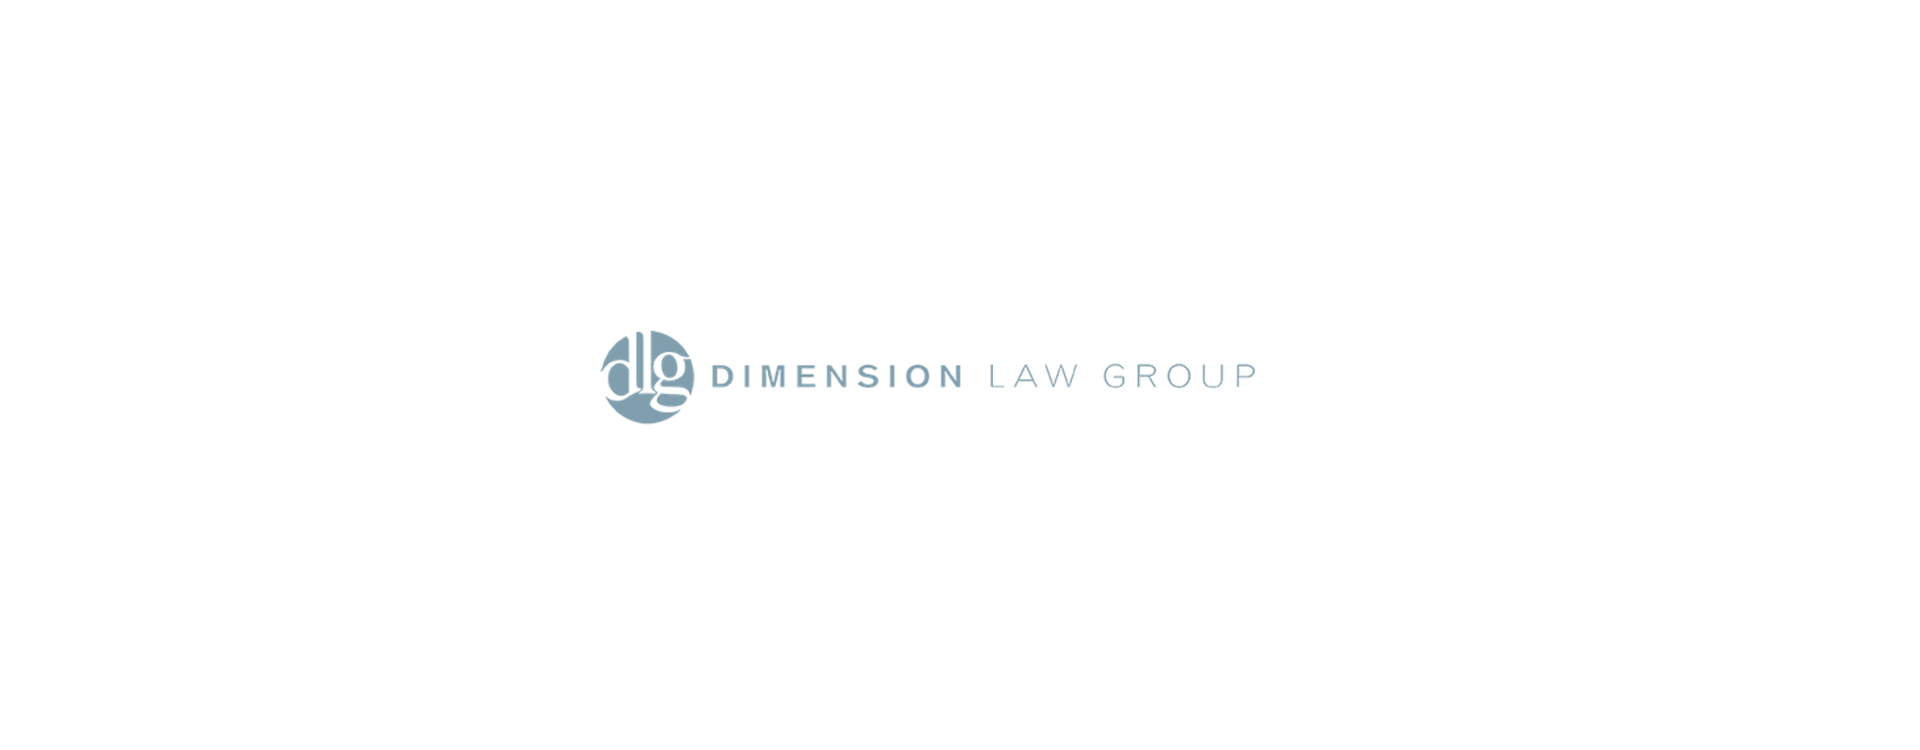 Dimension Law Group